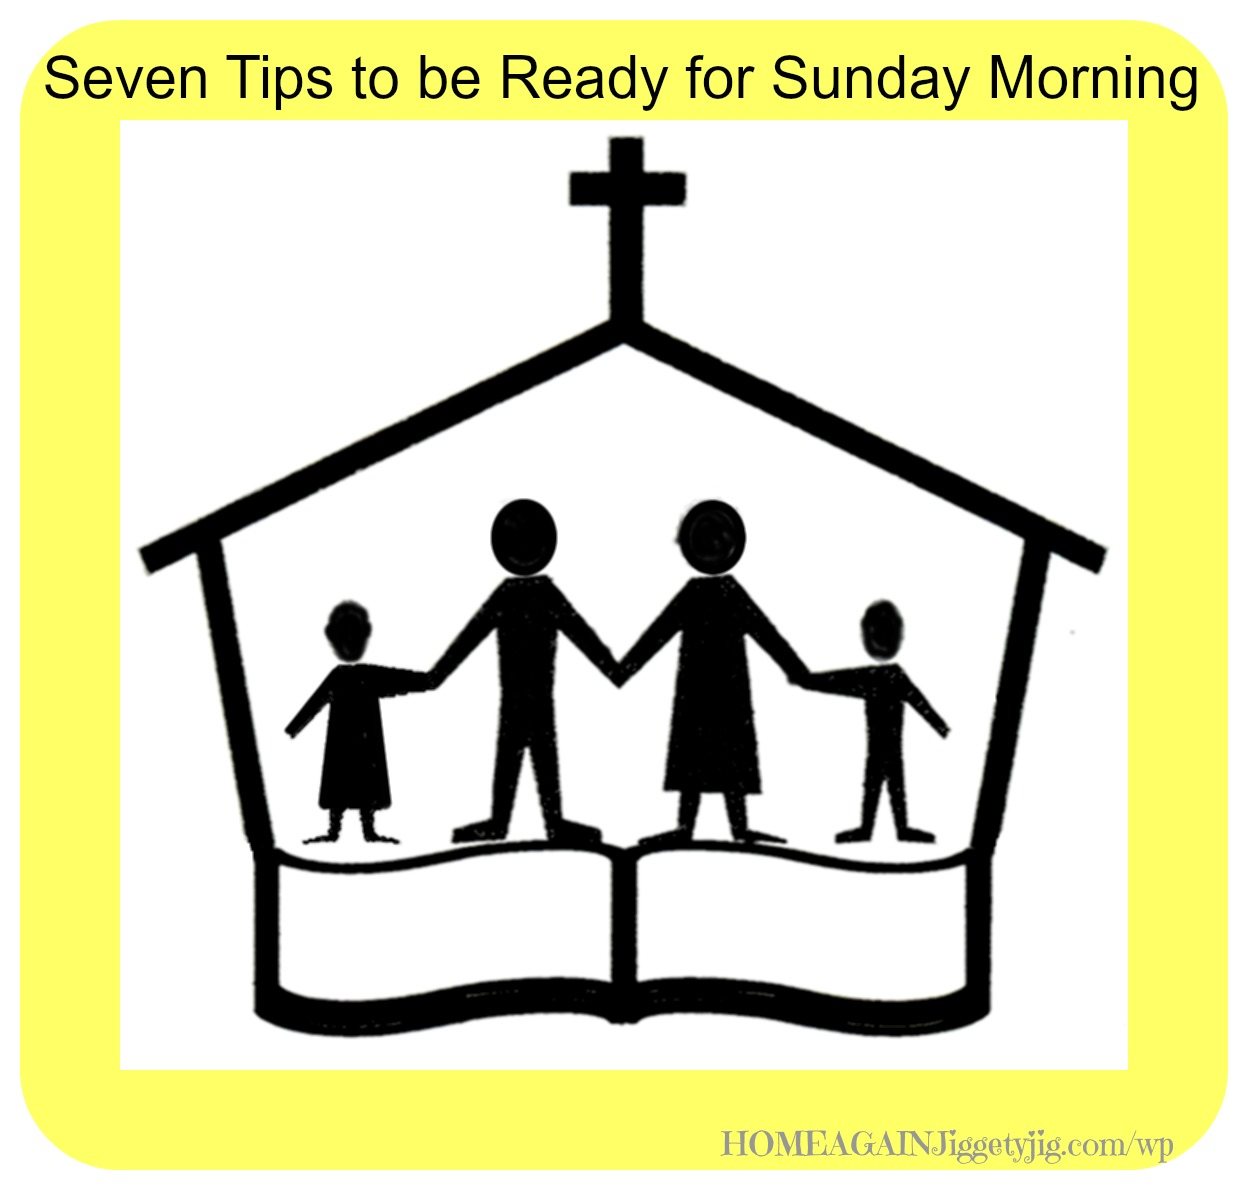 SEVEN TIPS TO BE READY FOR SUNDAY MORNING